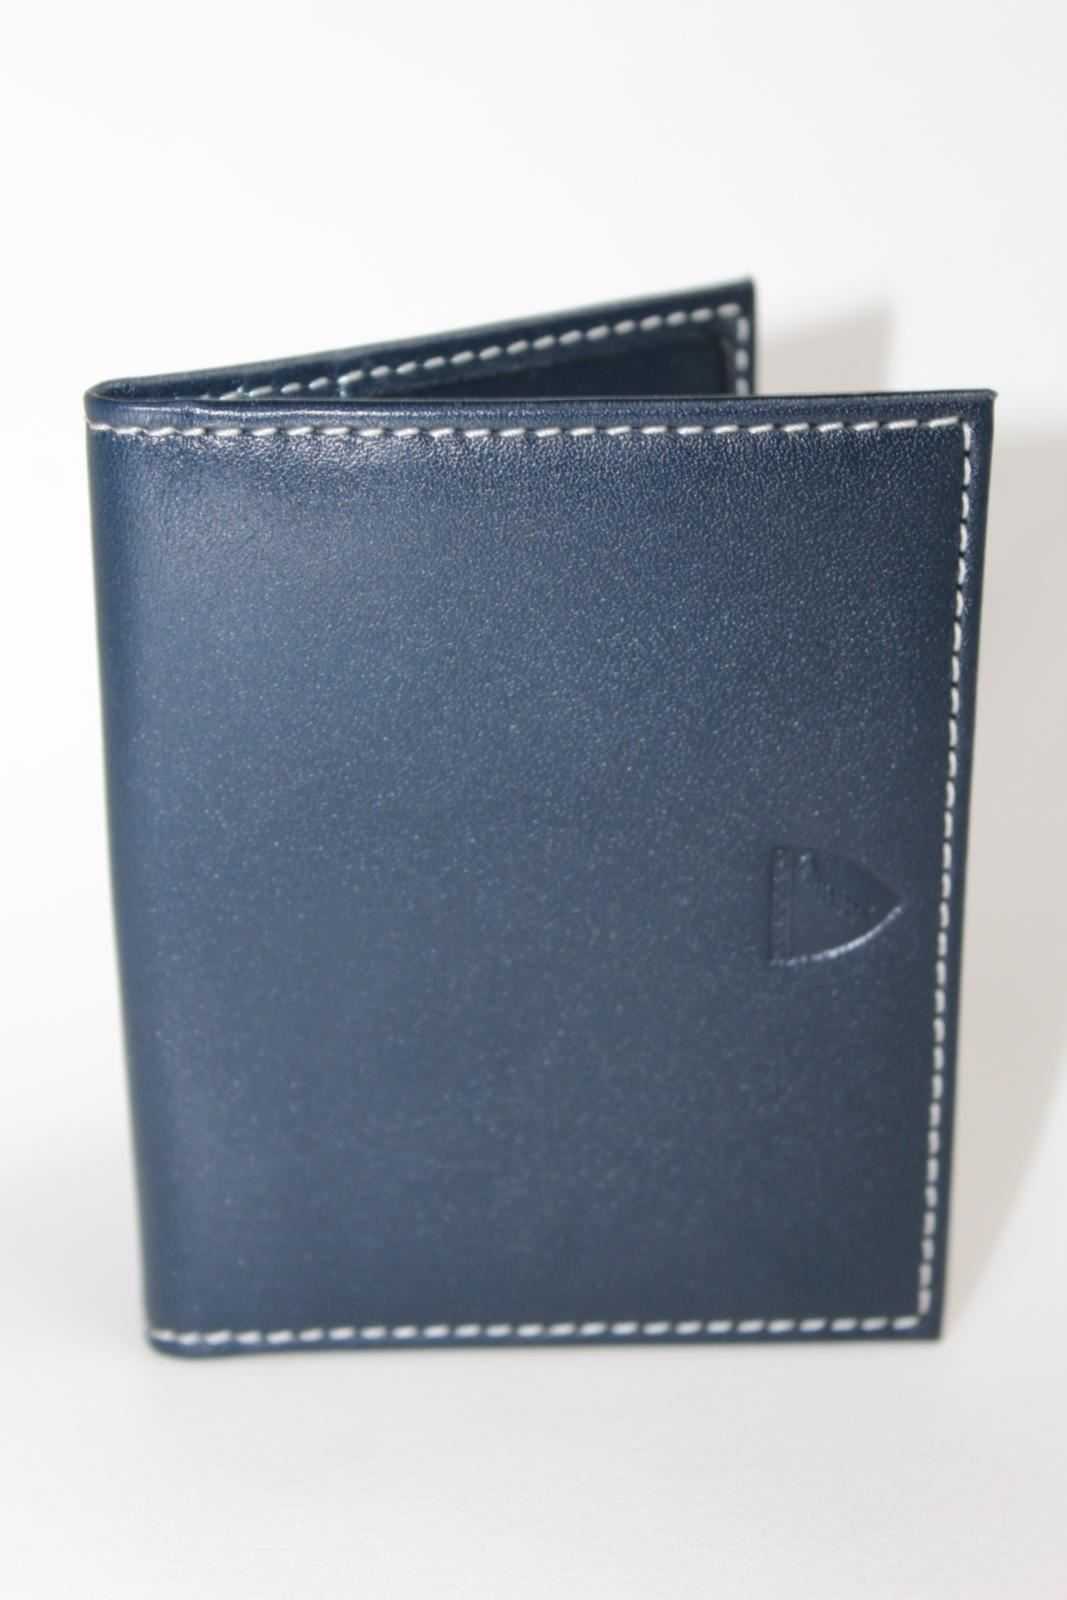 ASPINAL-OF-LONDON-Navy-Blue-w-Red-Lining-Embossed-ID-And-Travel-Card-Case-Wallet